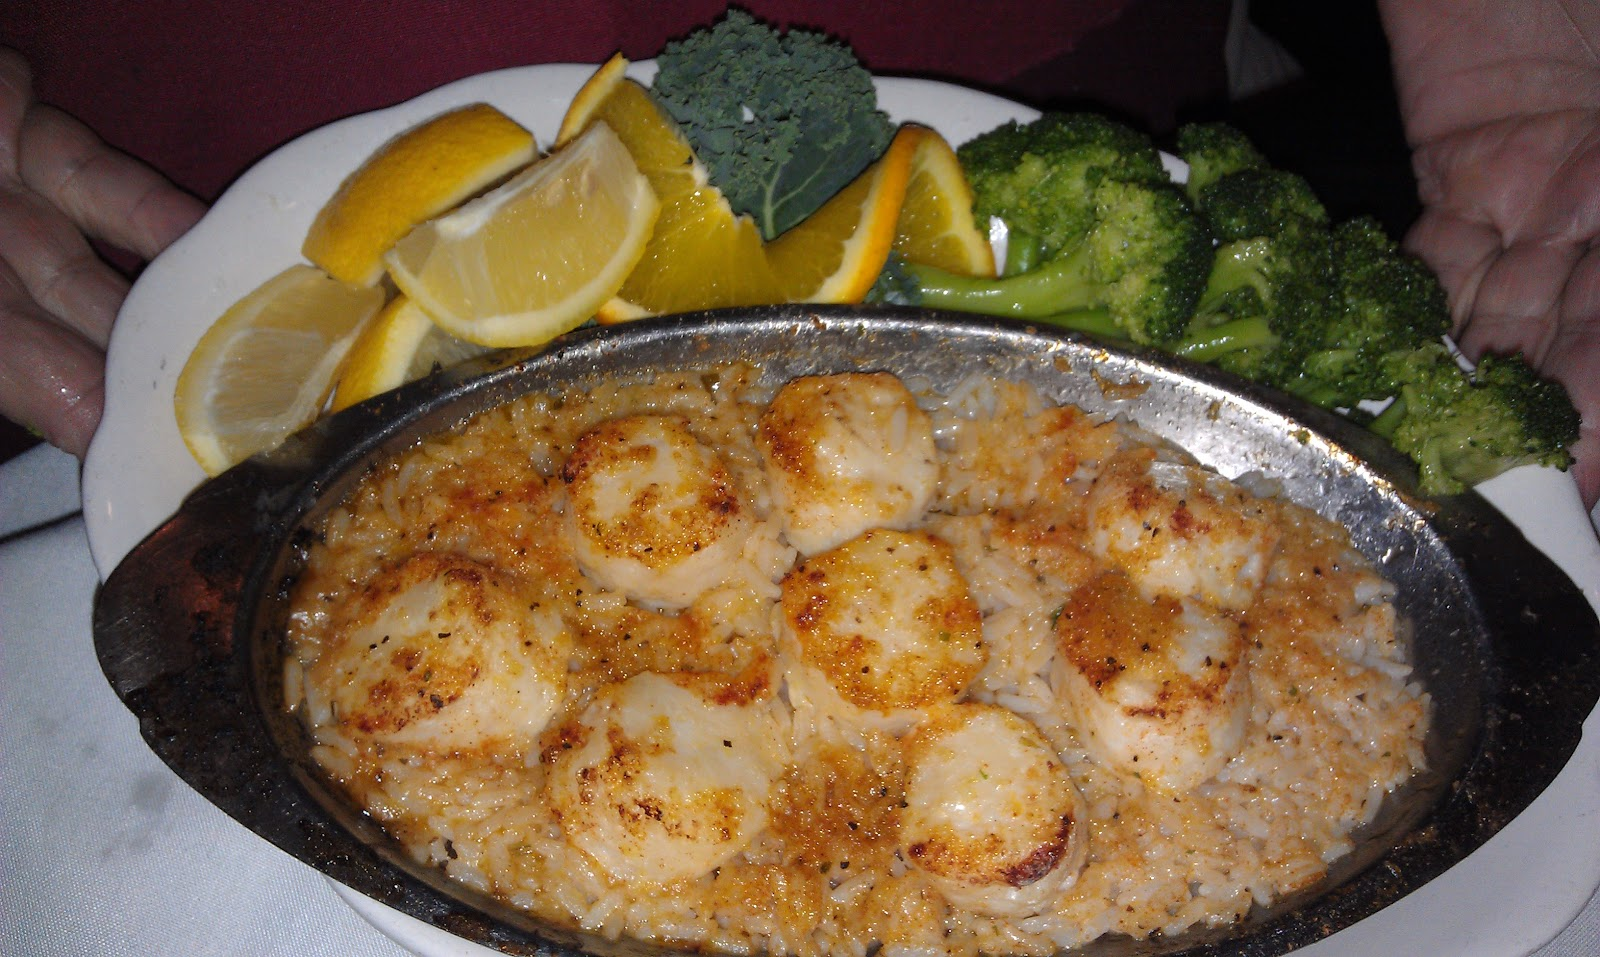 Baked Scallop Recipes My dad had scallops over rice,